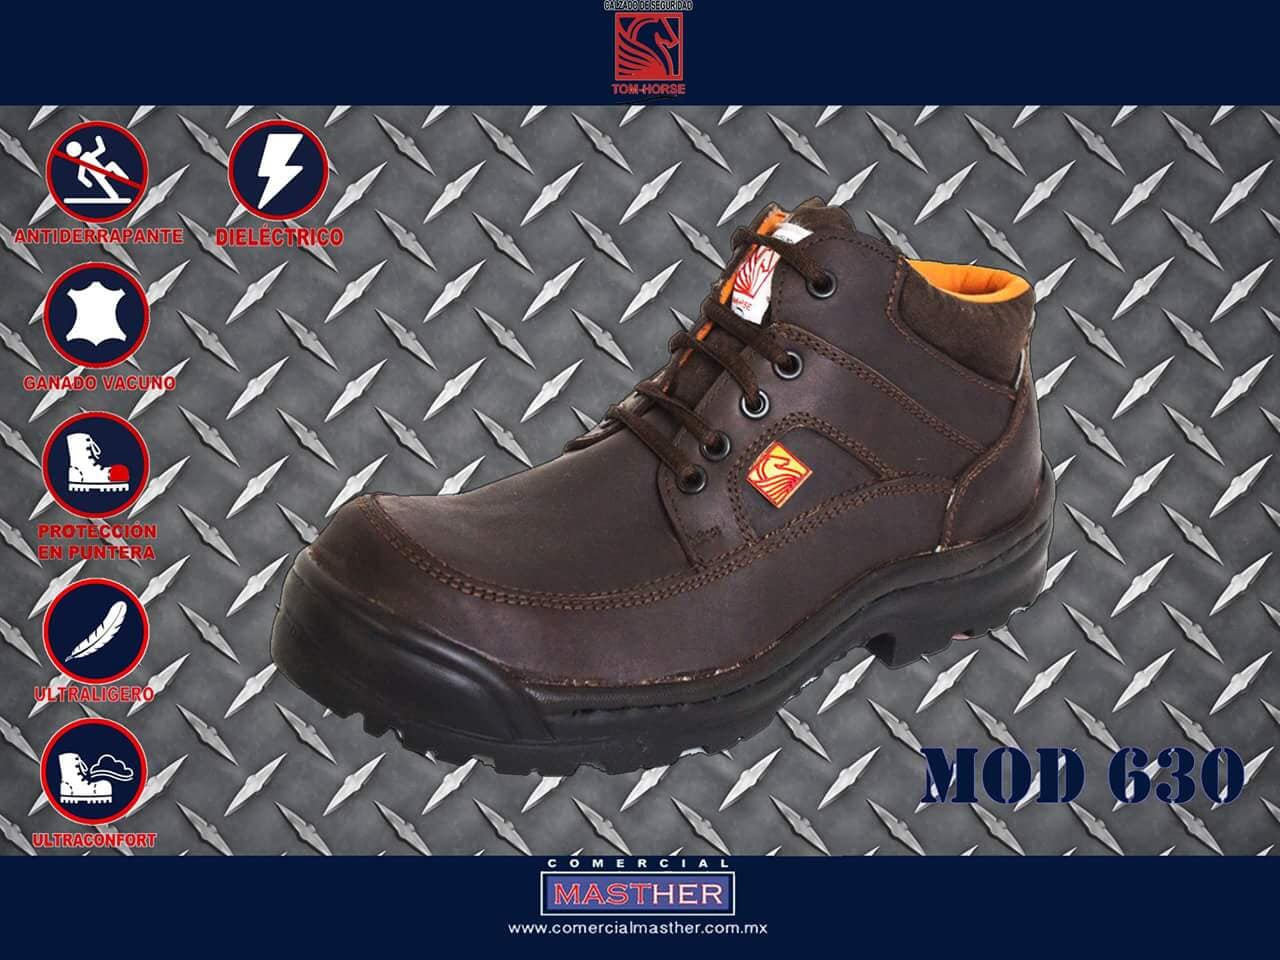 COMERCIAL MASTHER Botas industriales